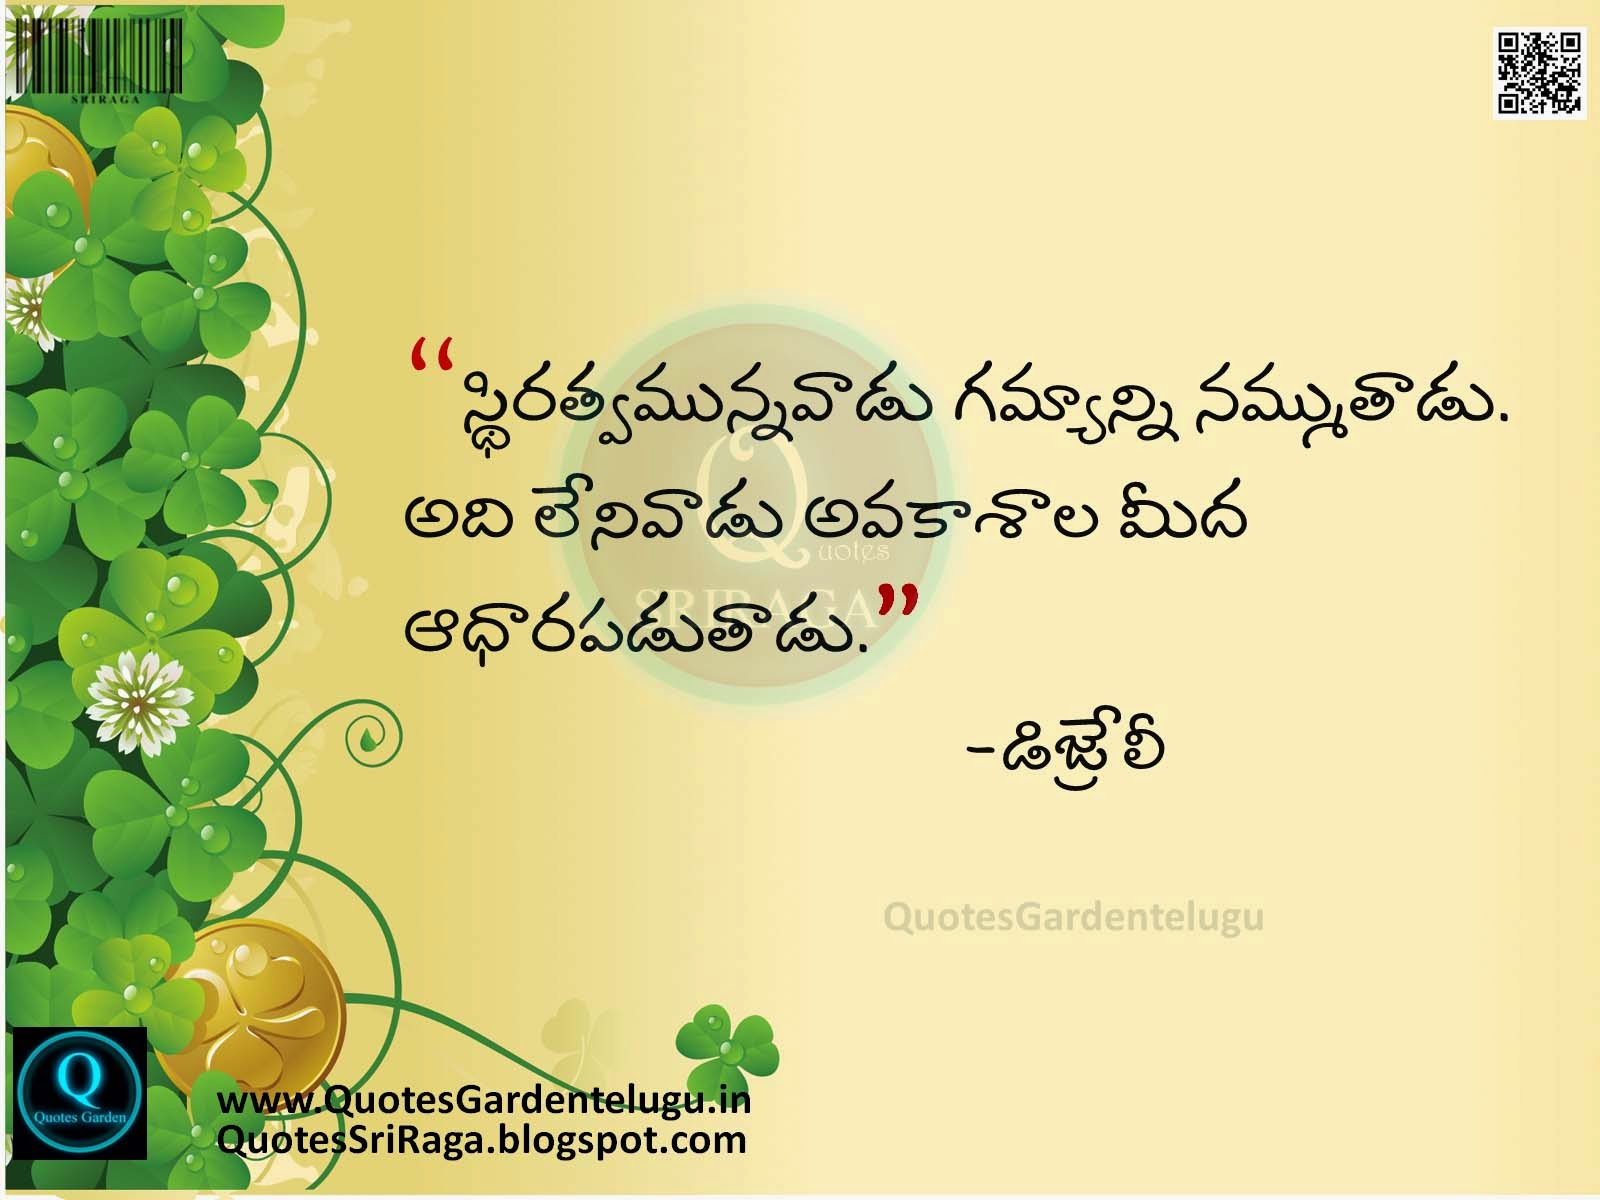 Best Telugu Good Reads Telugu with Beautiful images Hdwallpapers Inspirational Telugu Quotes with images